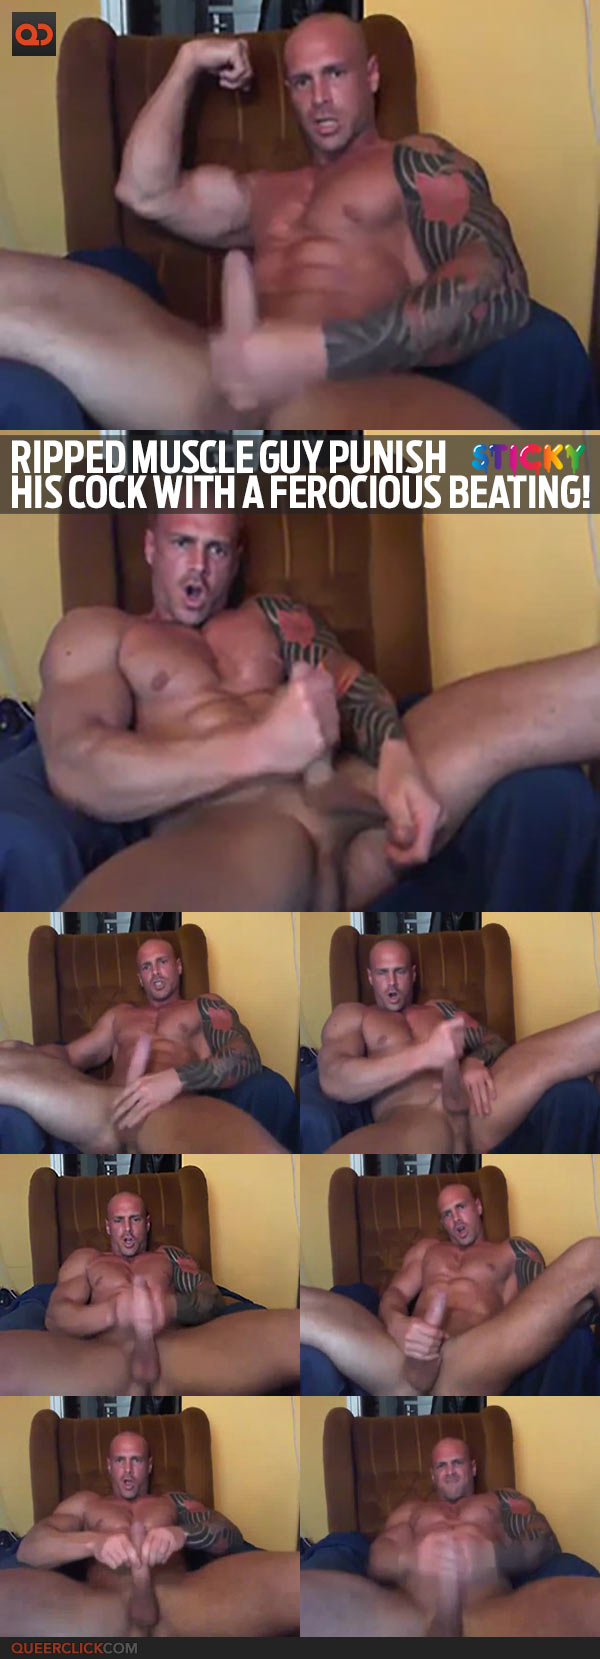 Ripped Muscle Guy Punish His Cock With A Ferocious Beating!